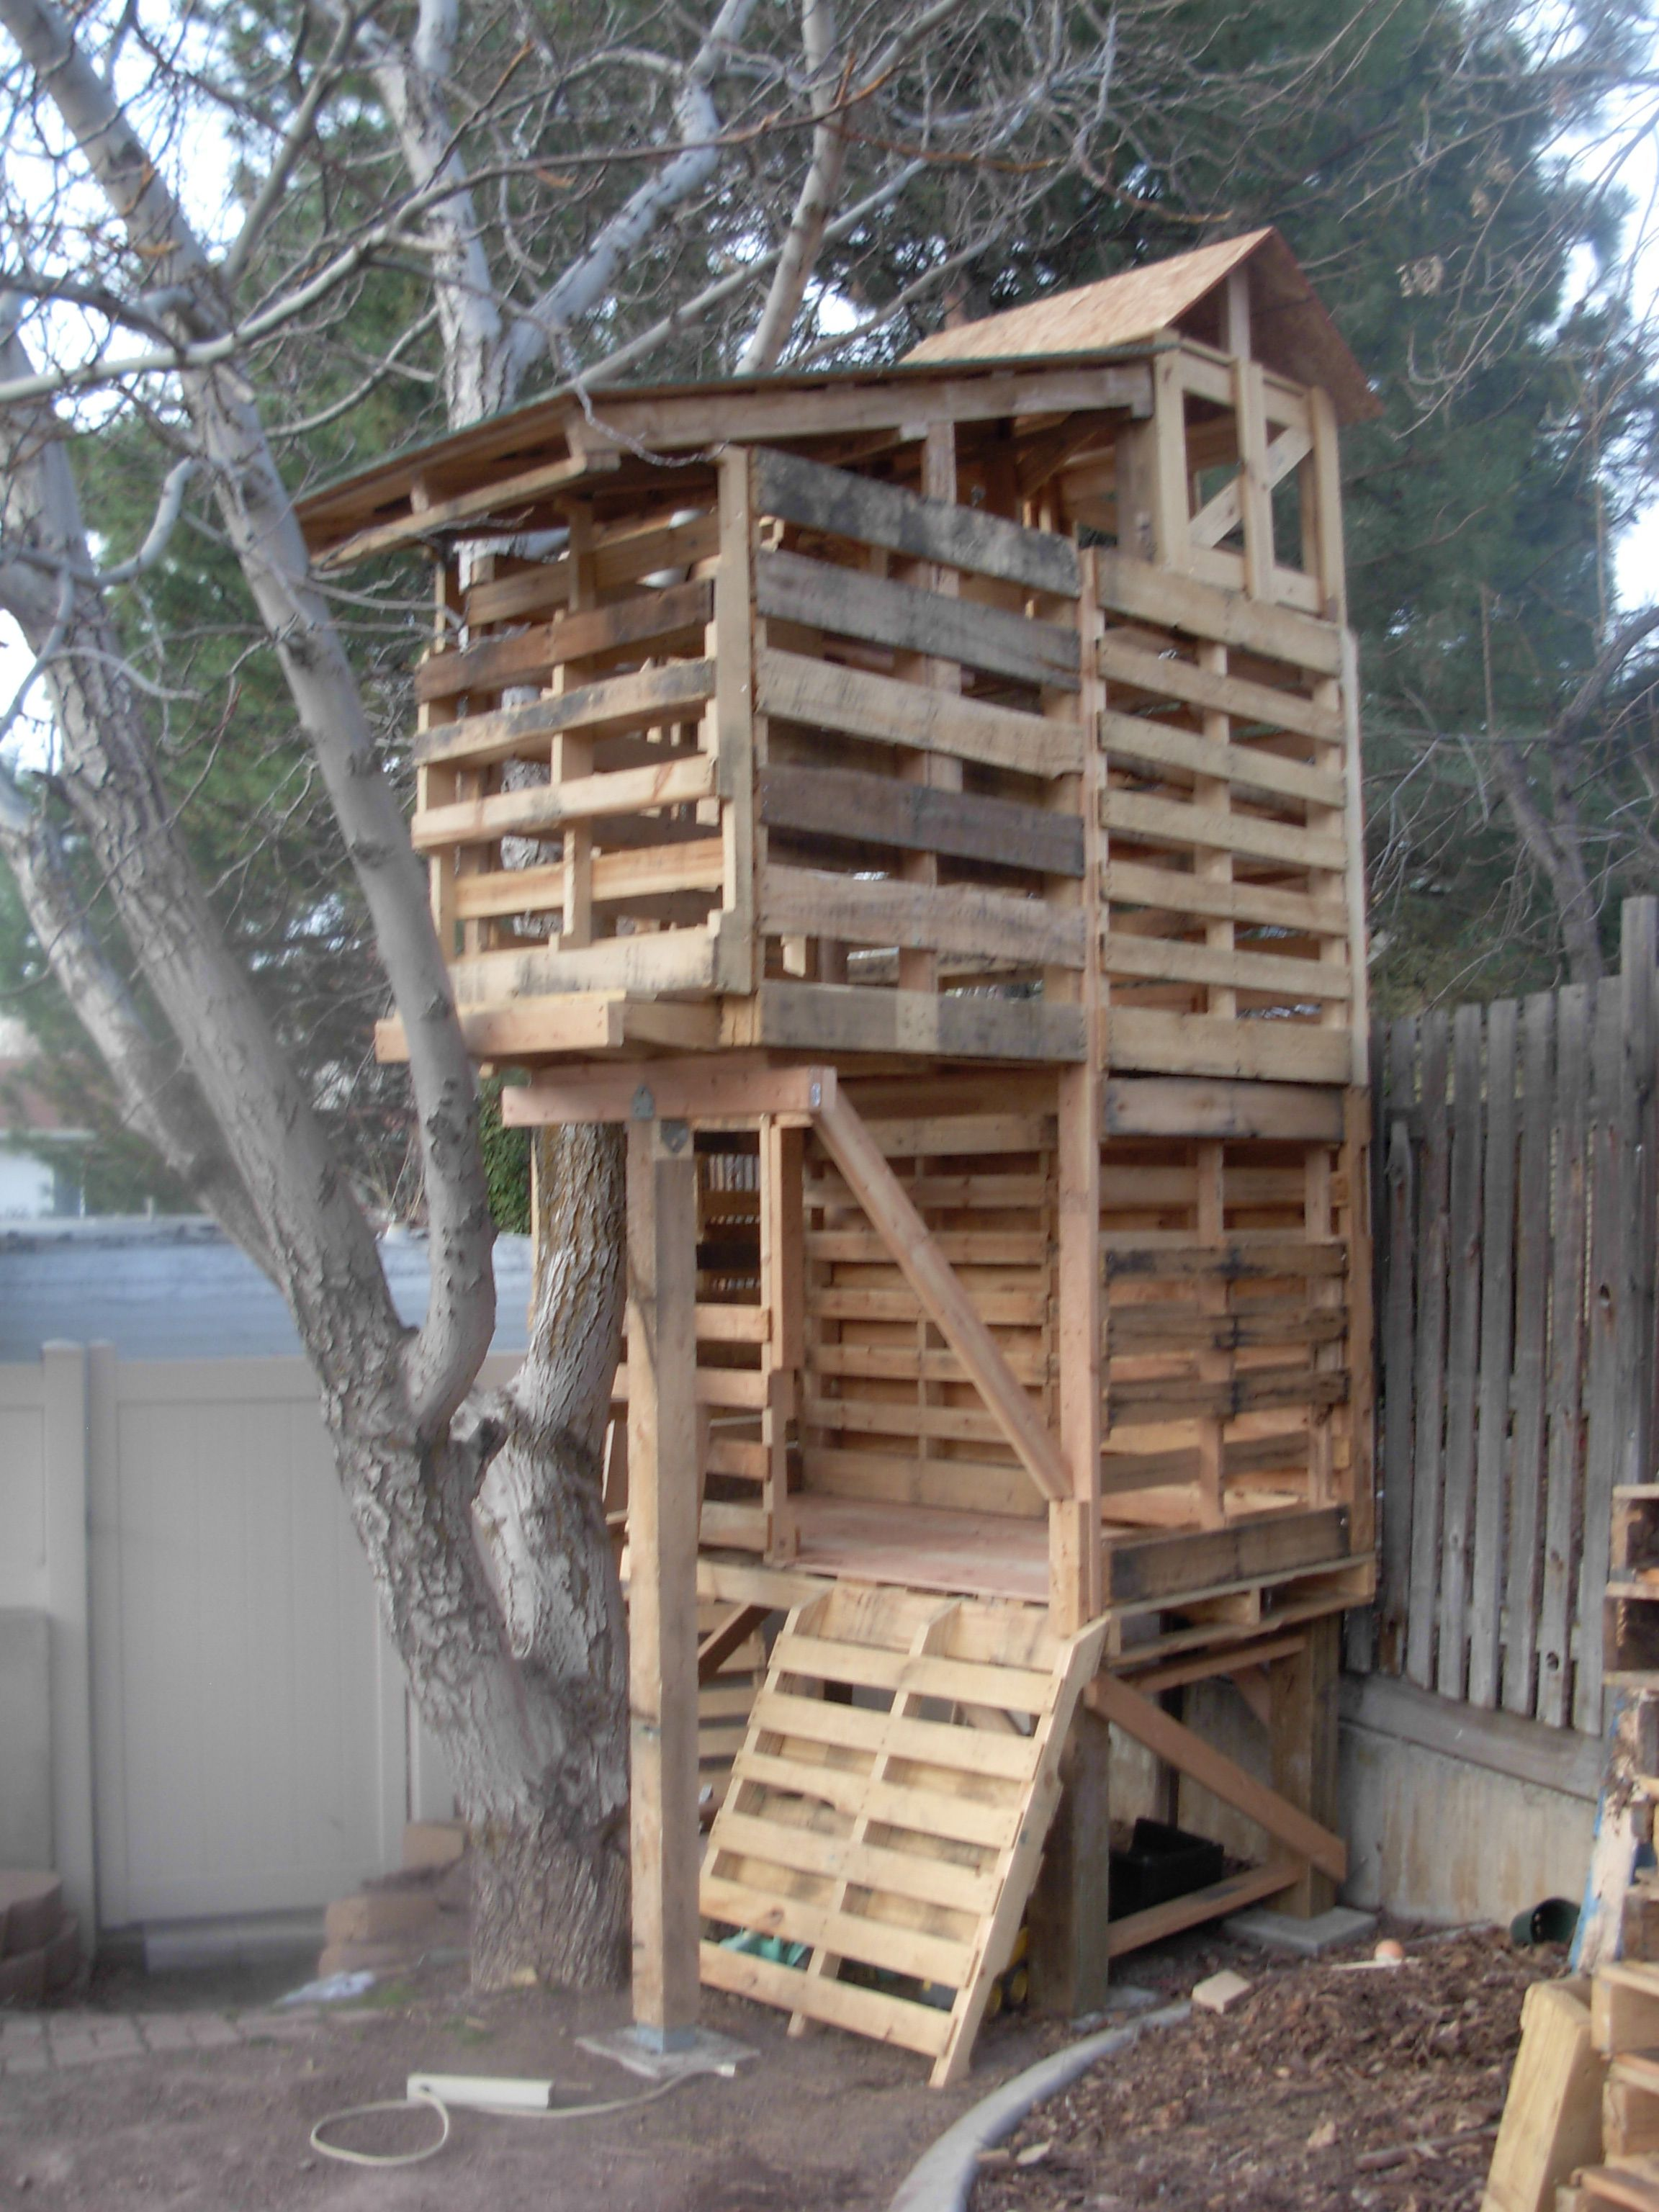 Pallet tree houses on pinterest pallet fort pallet for Pallet tree fort